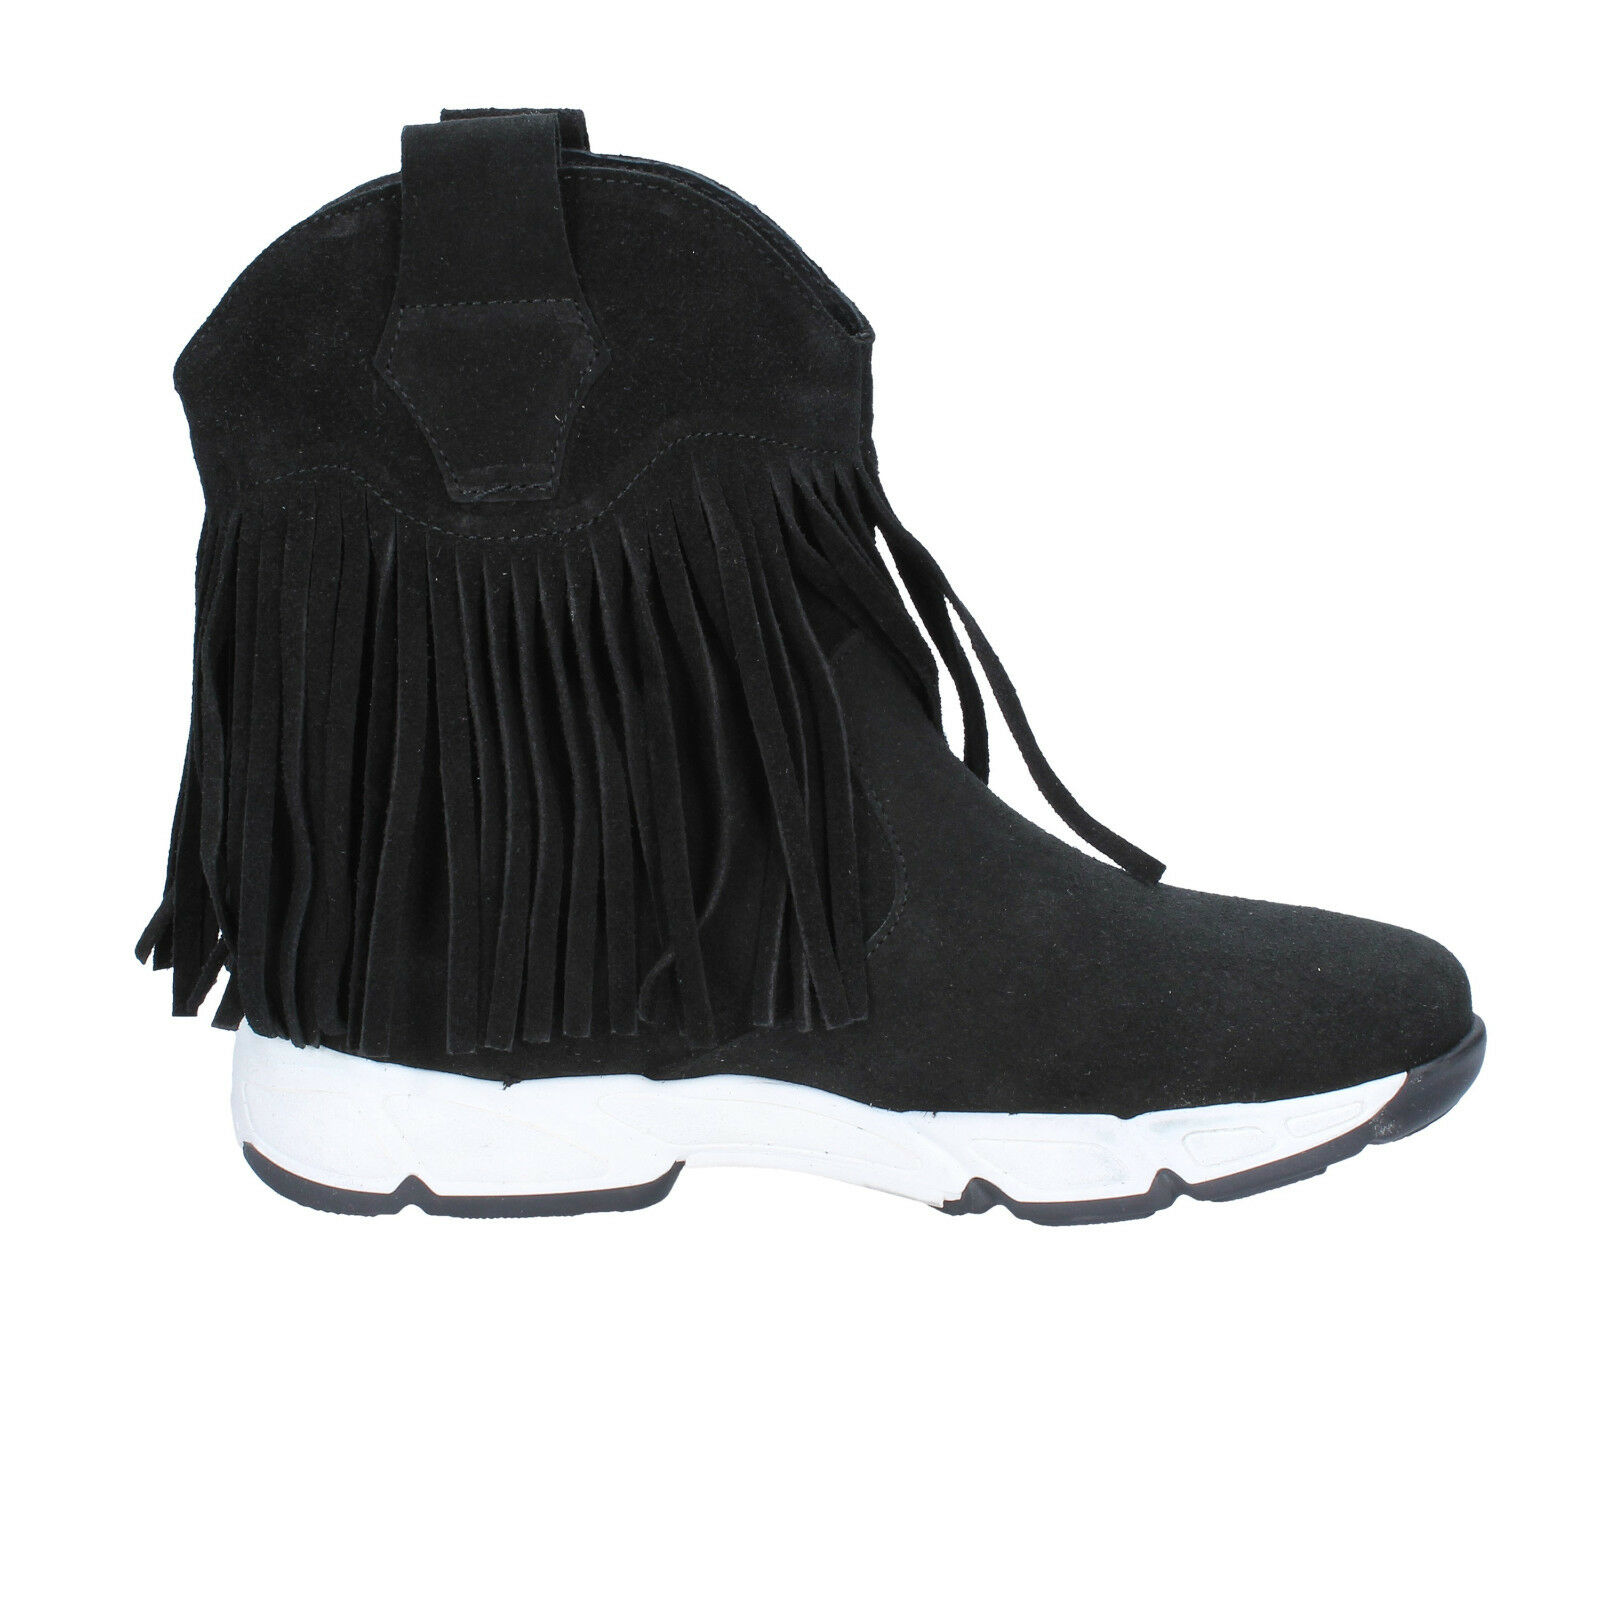 Women's shoes OLGA RUBINI 7 (EU 40) ankle ankle ankle boots black suede BX784-40 27343f